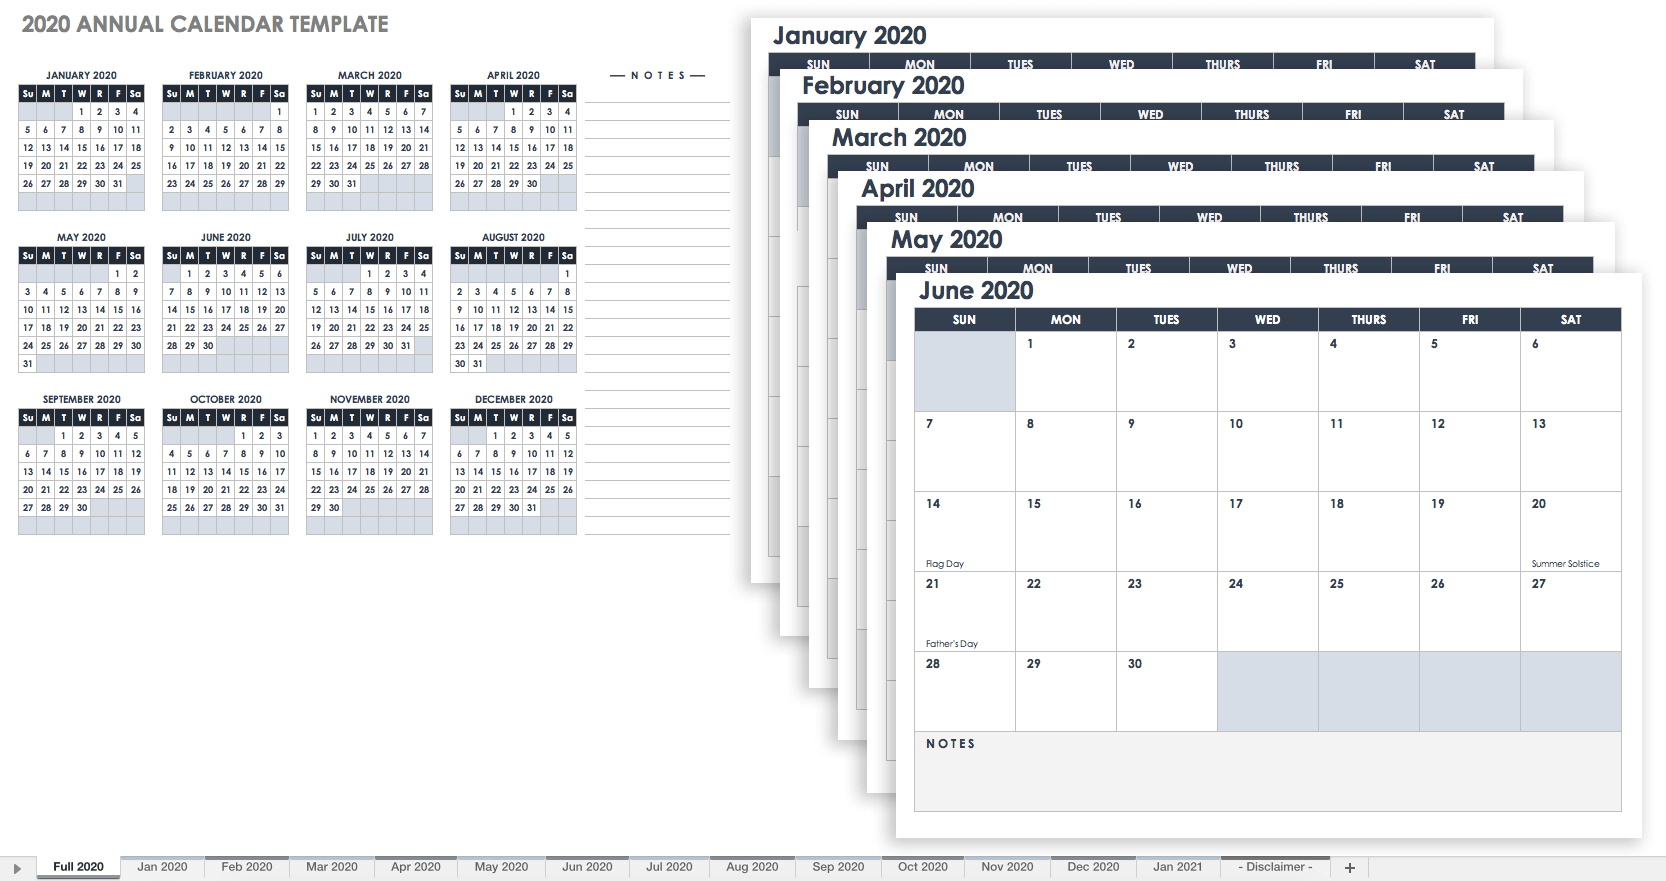 Free Excel Calendar Templates intended for Excel Calendar At A Glance 2020